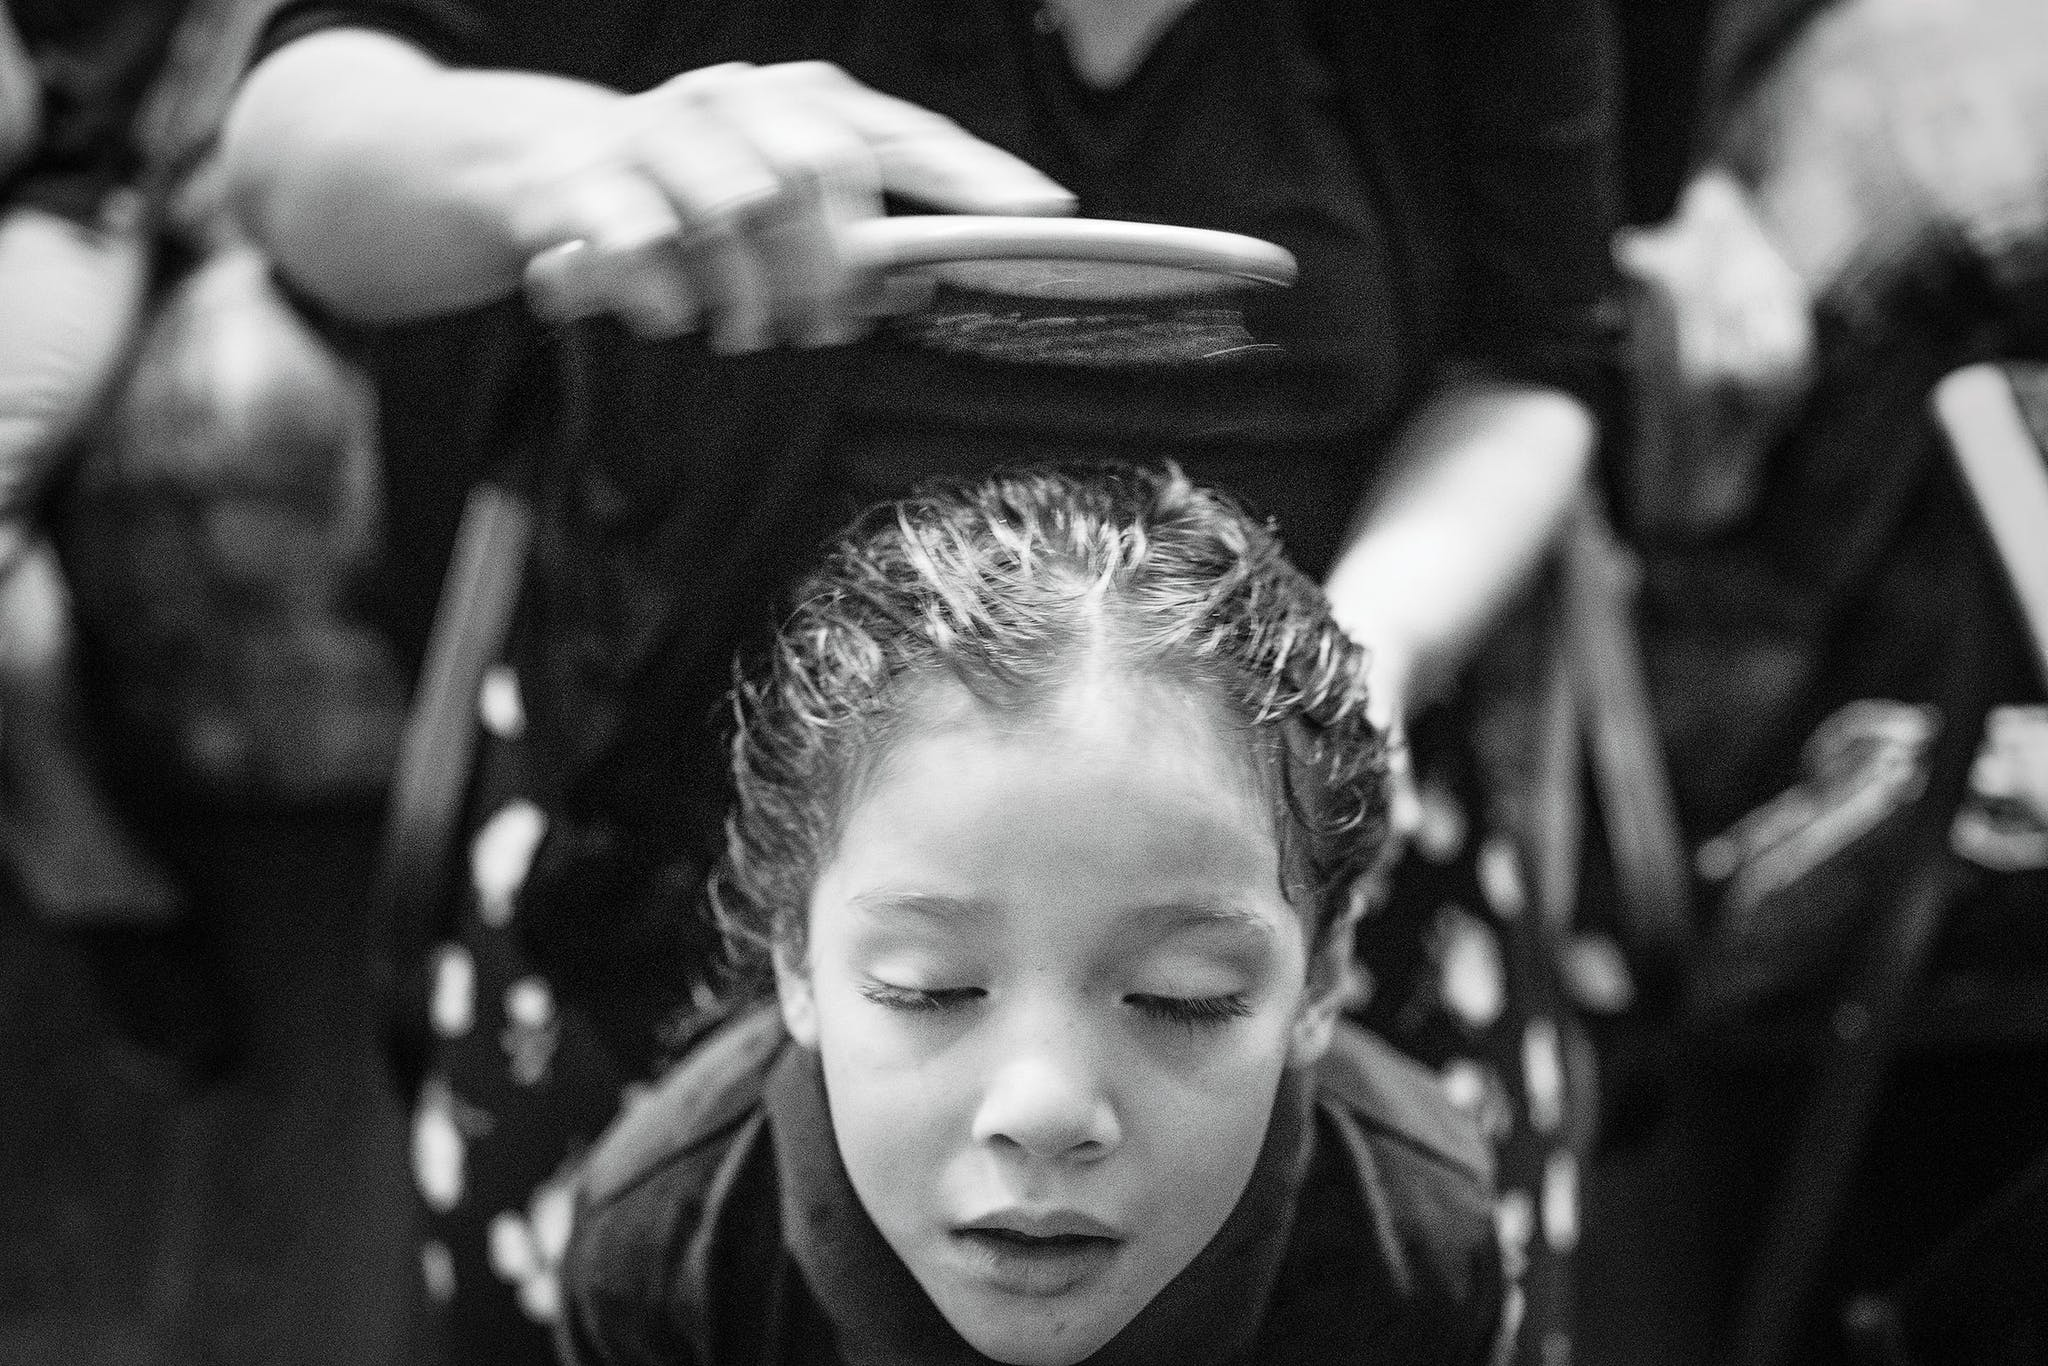 Kayla Isuala, four, has her hair brushed by her mother, Cindy, after her morning shower.